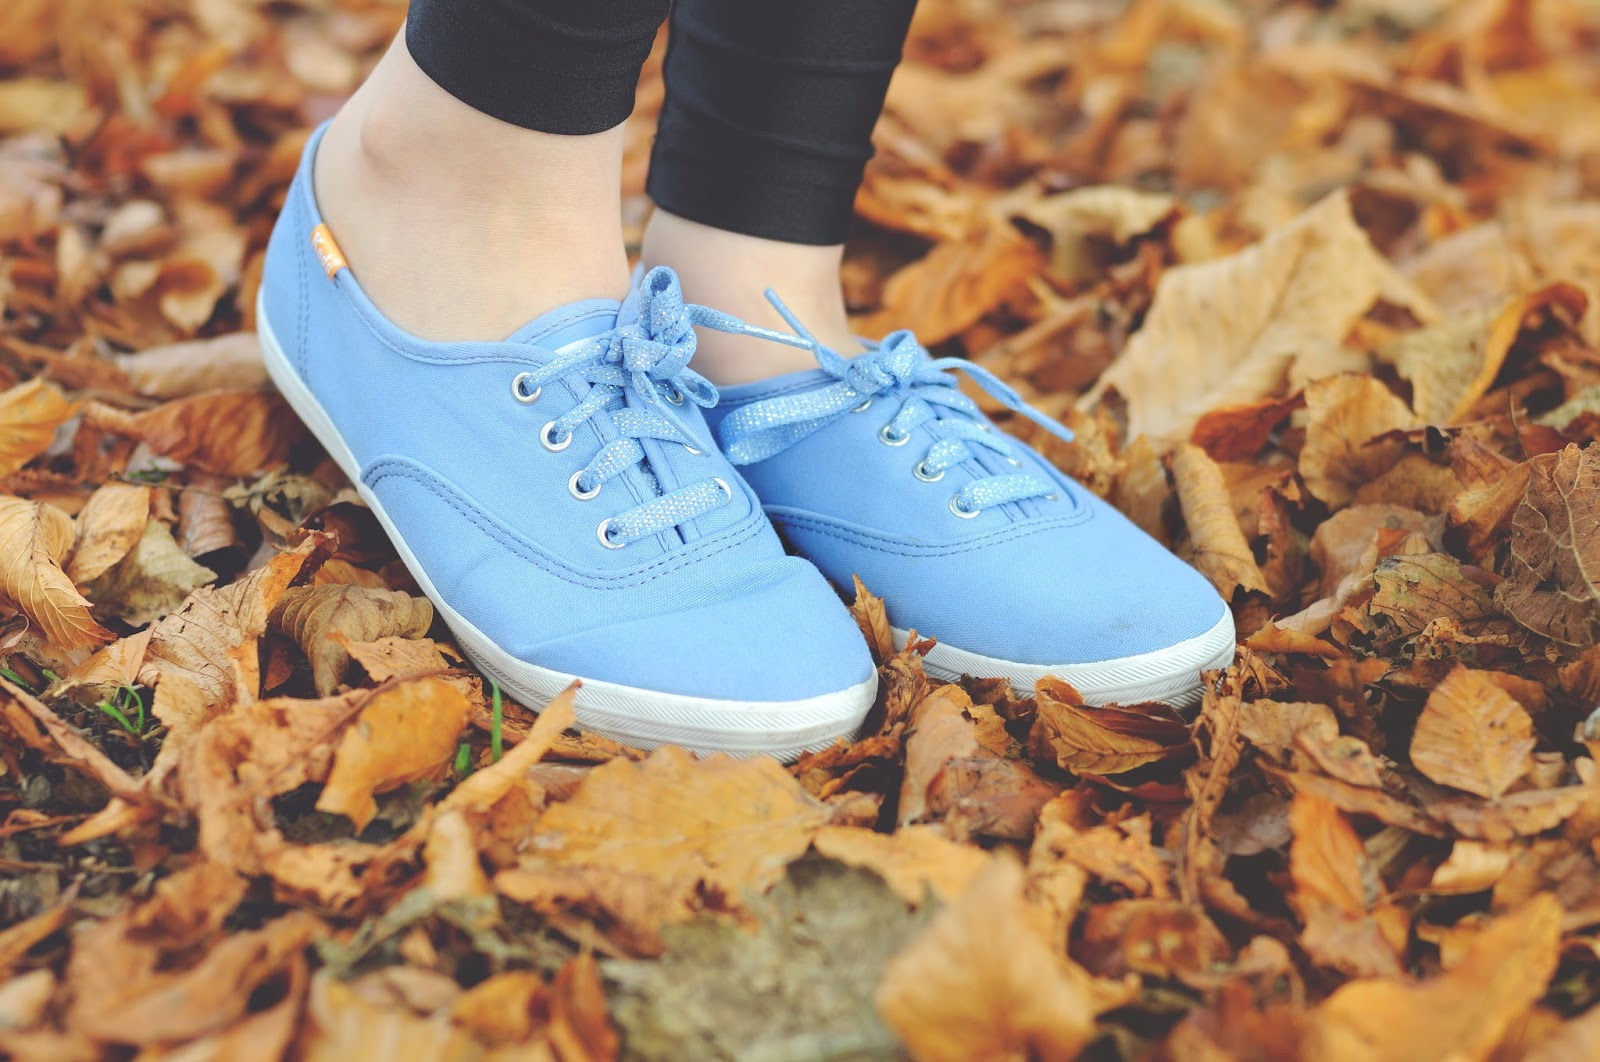 Blue keds, Keds trainers